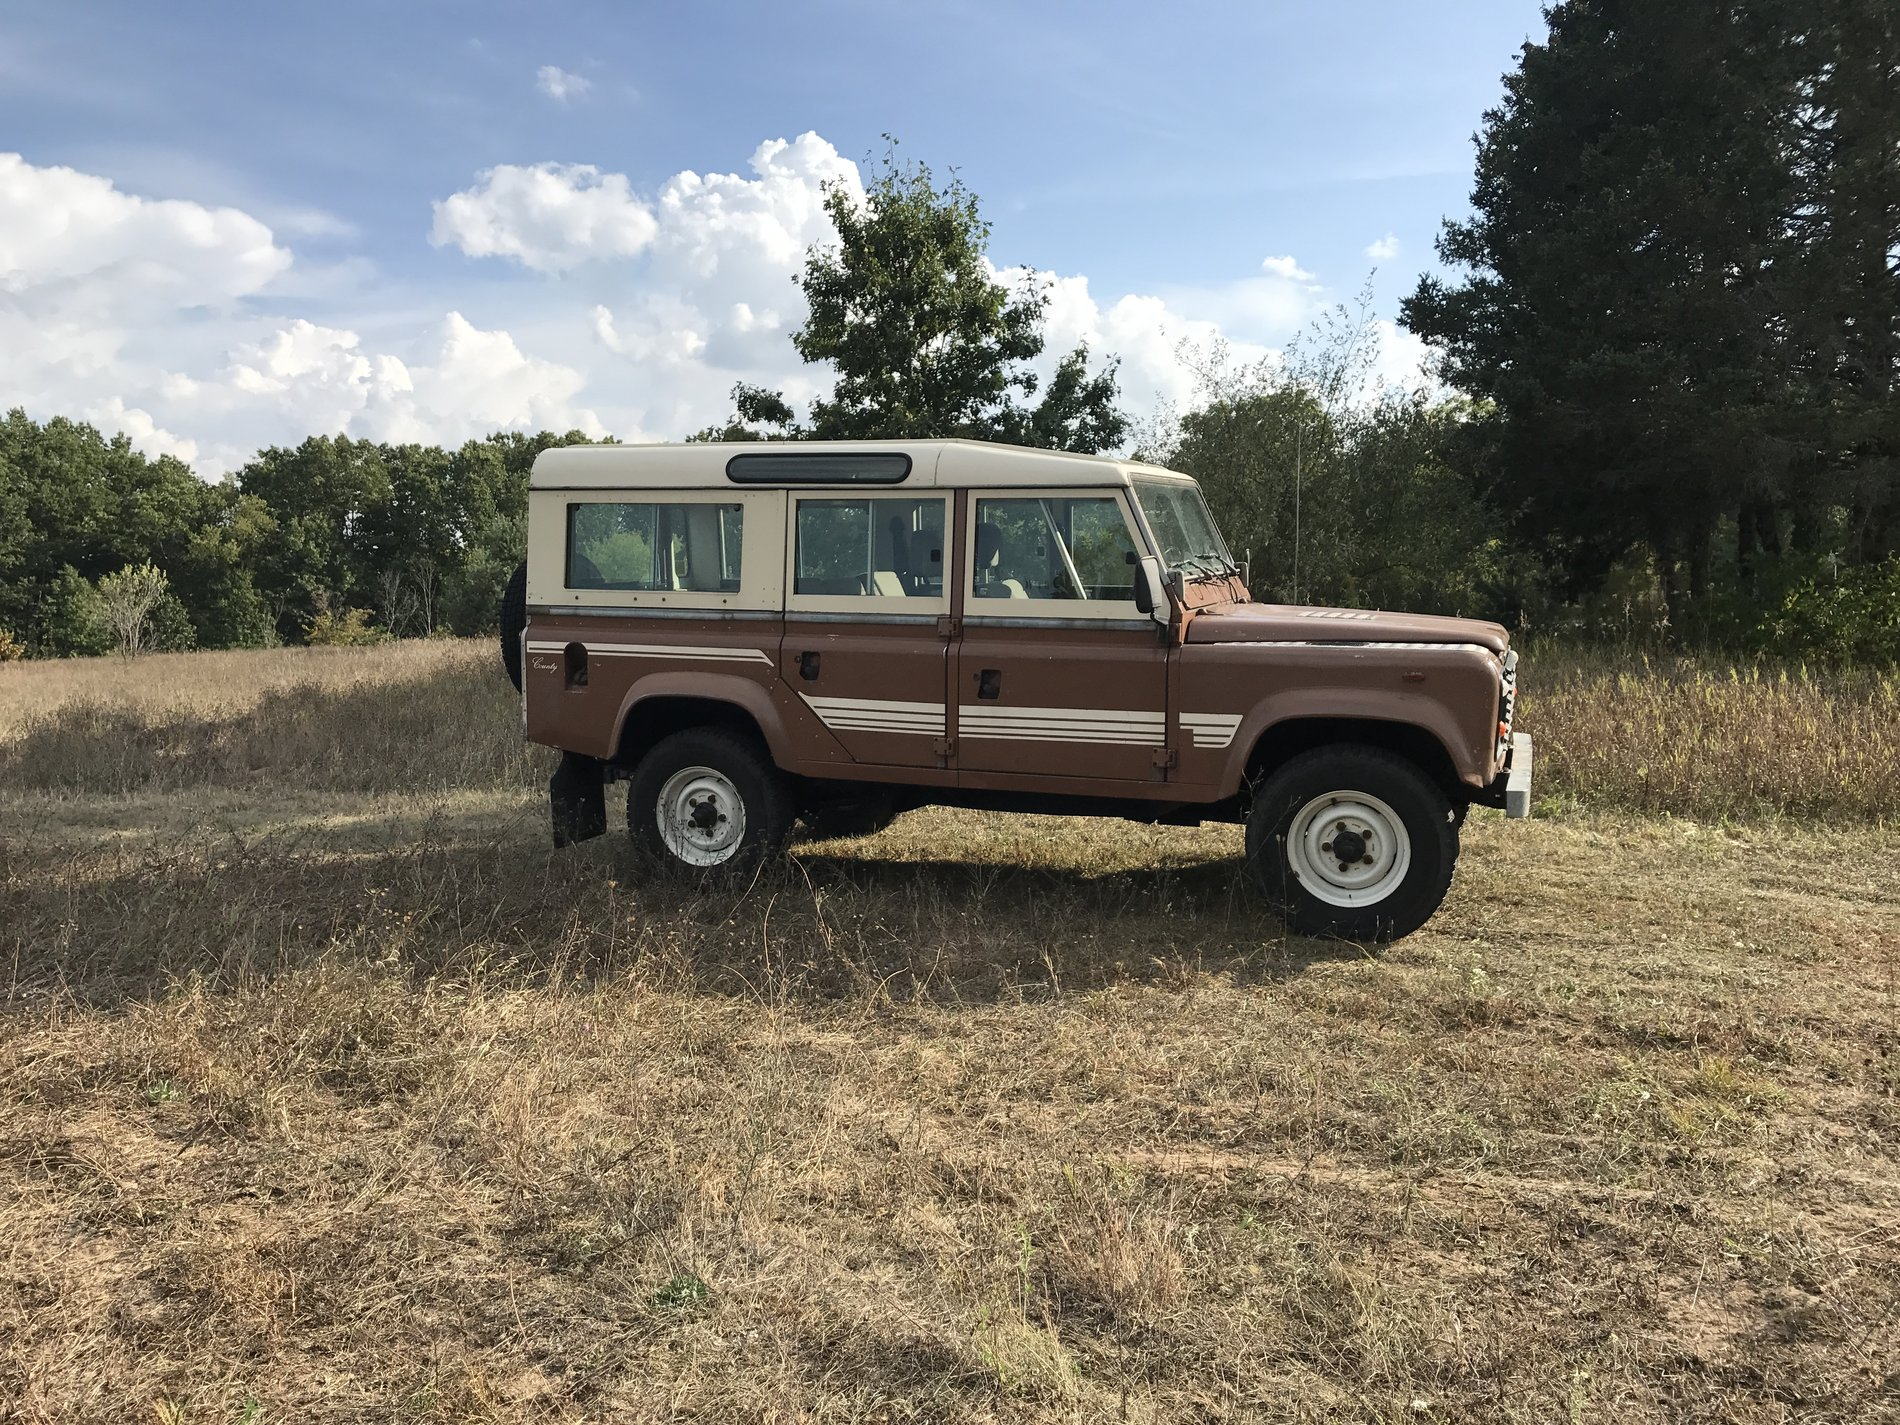 1983 Land Rover One Ten   Second Daily Clics